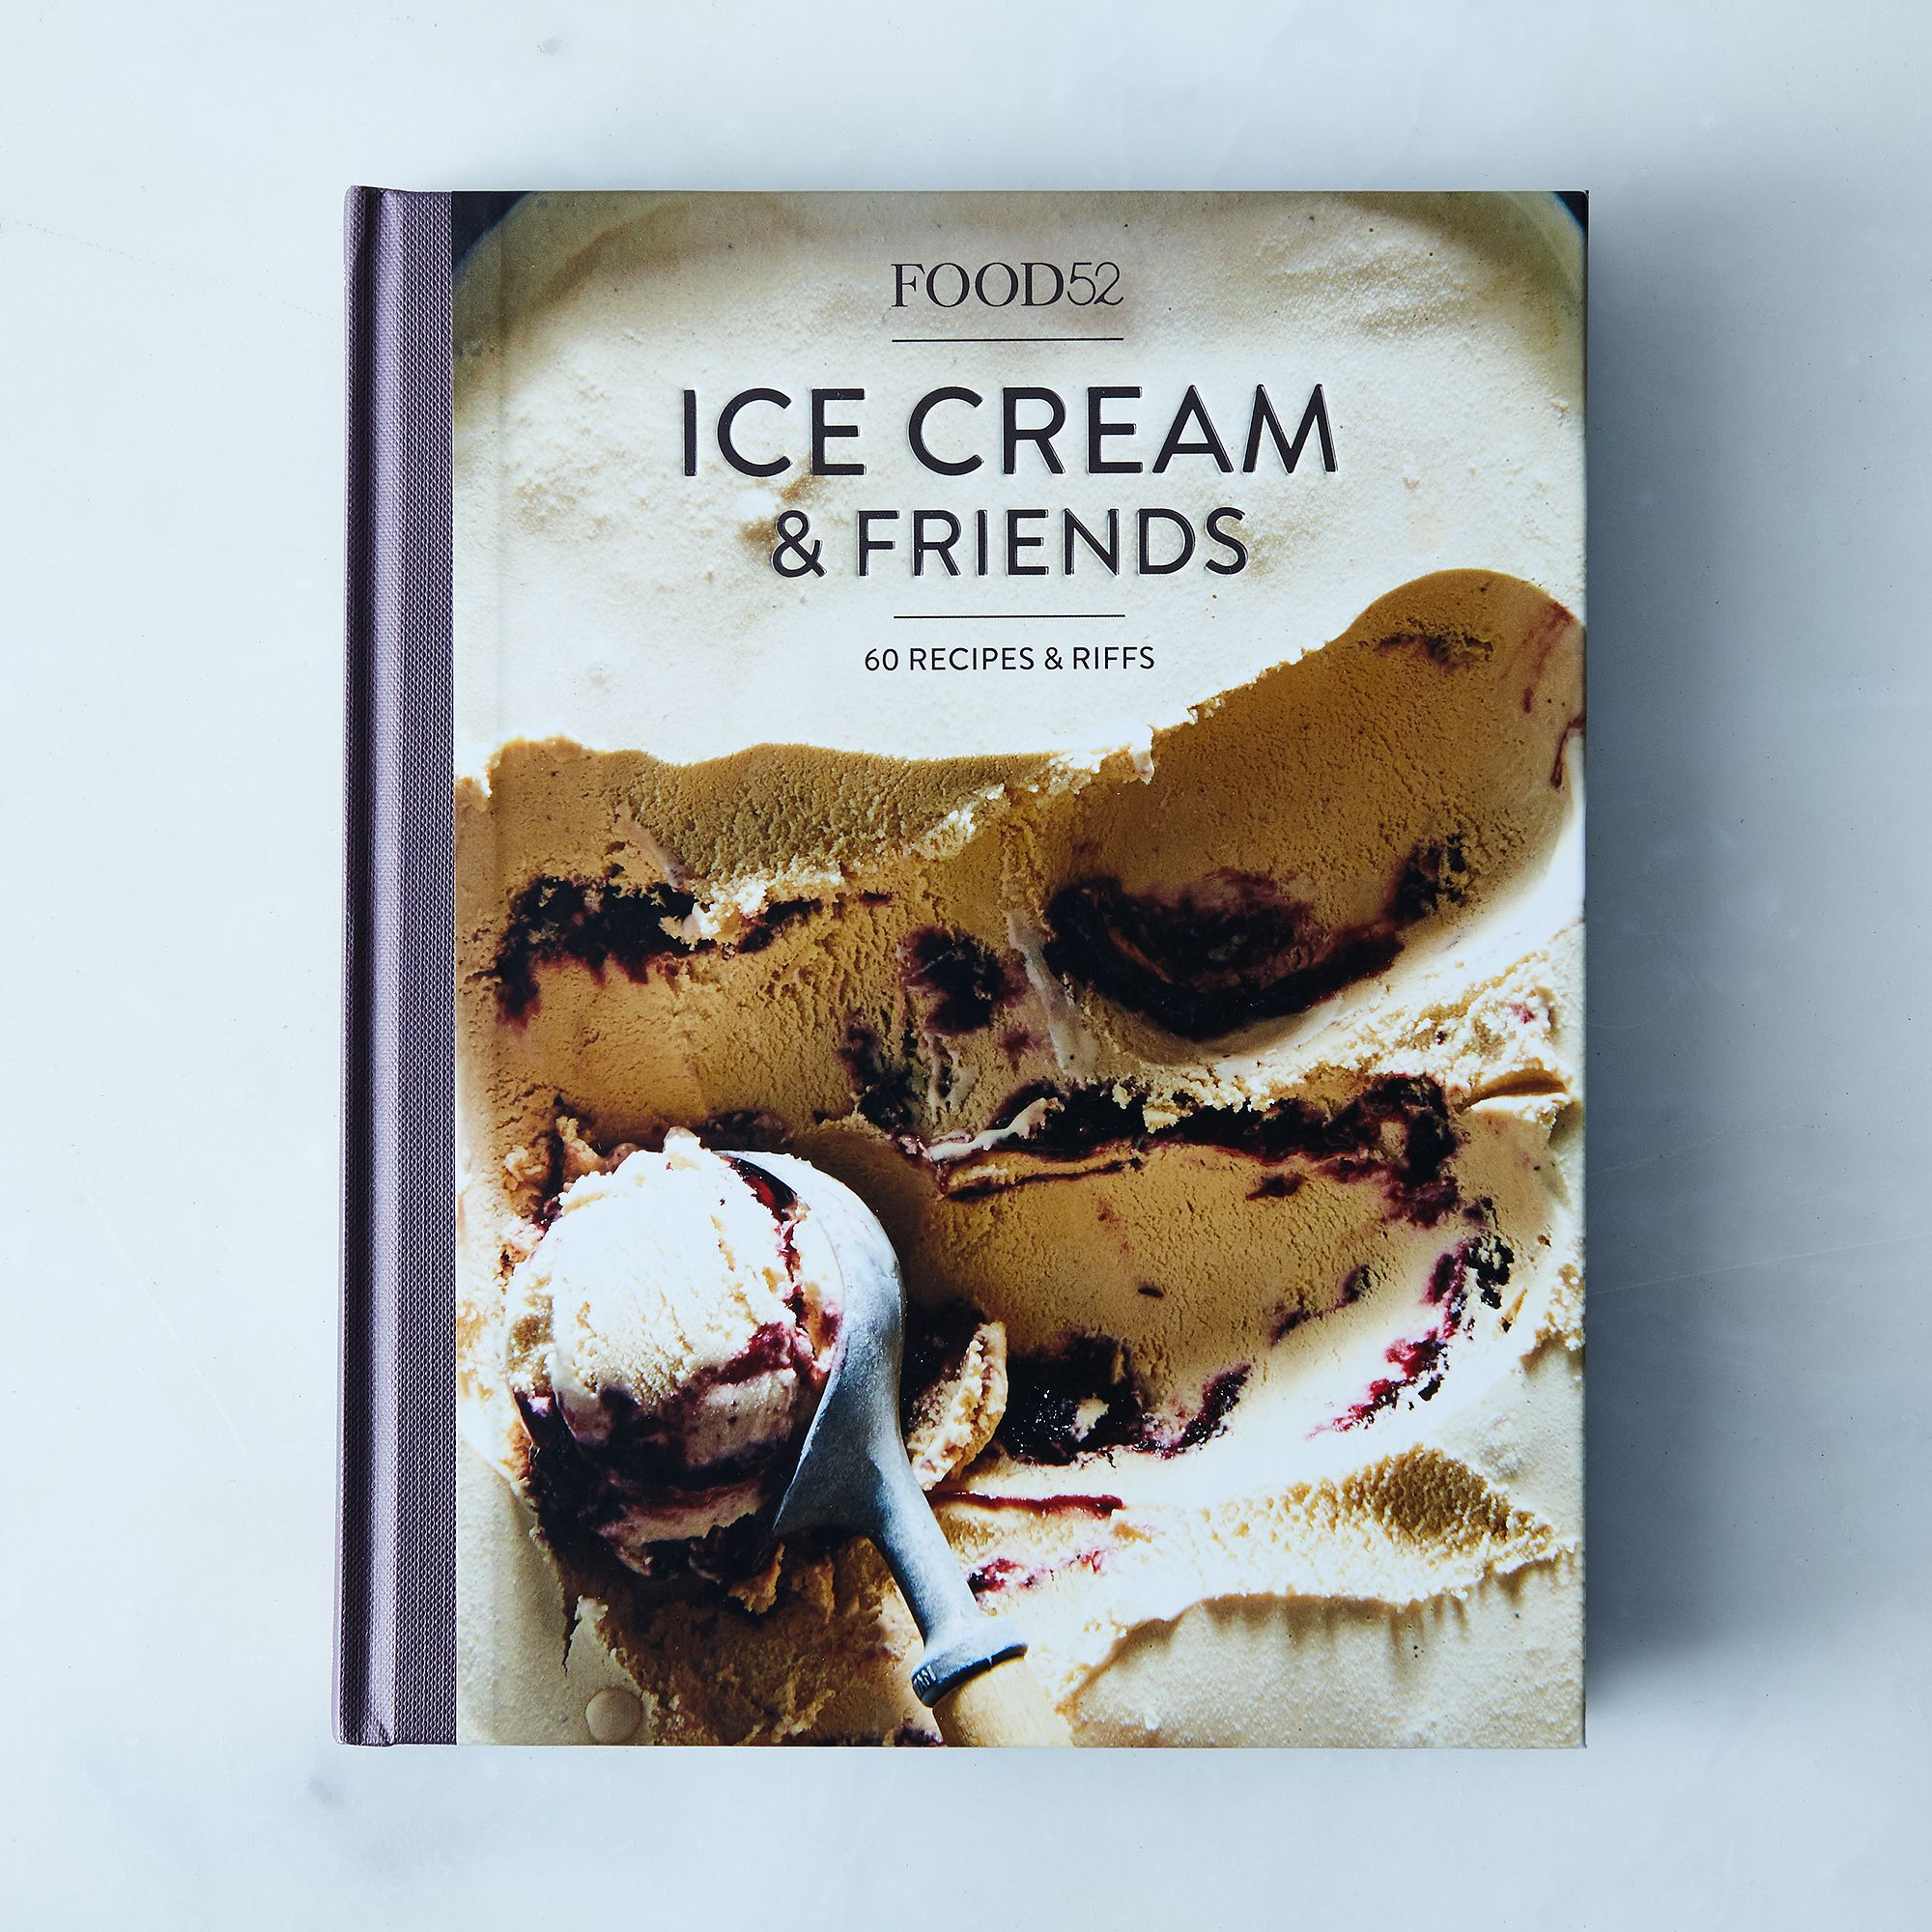 Signed Copy: Food52 Ice Cream & Friends - Ice Cream & Friends